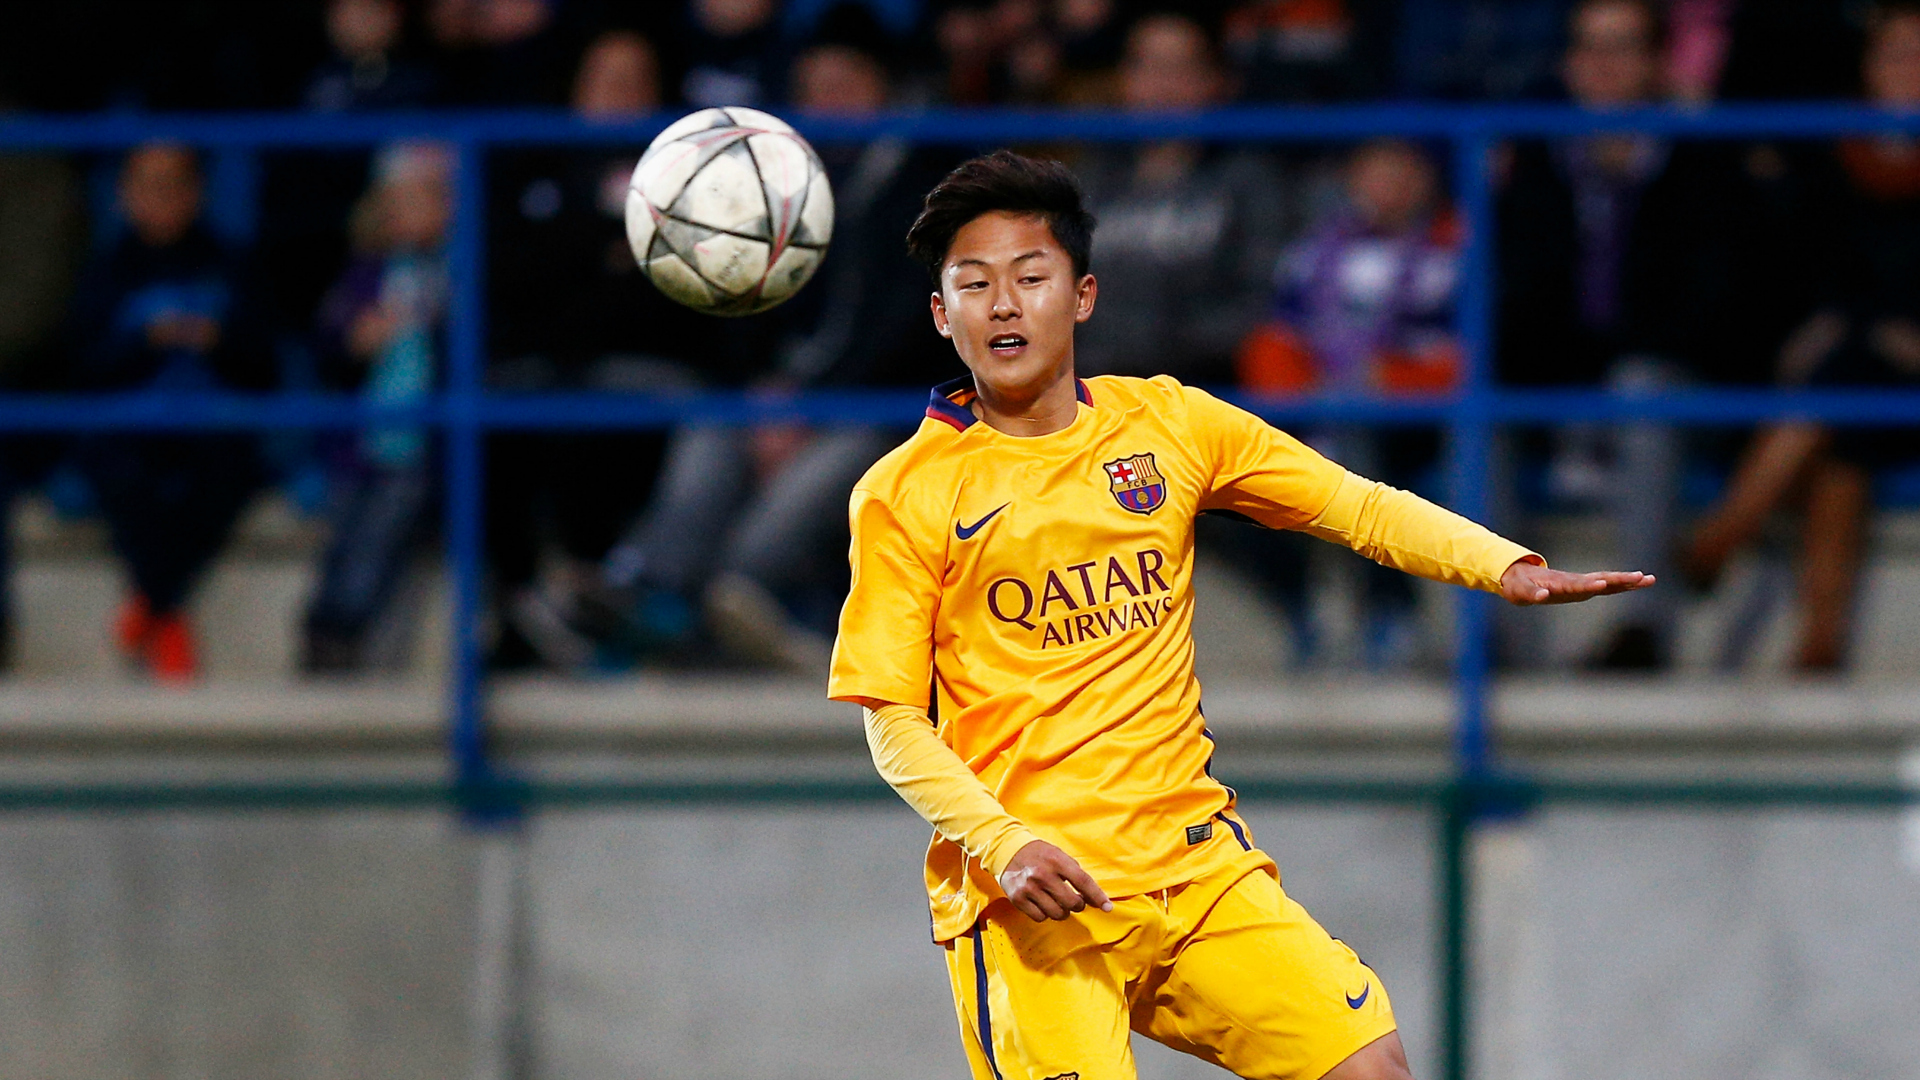 Borussia Dortmund move for Barcelona wonderkid Lee